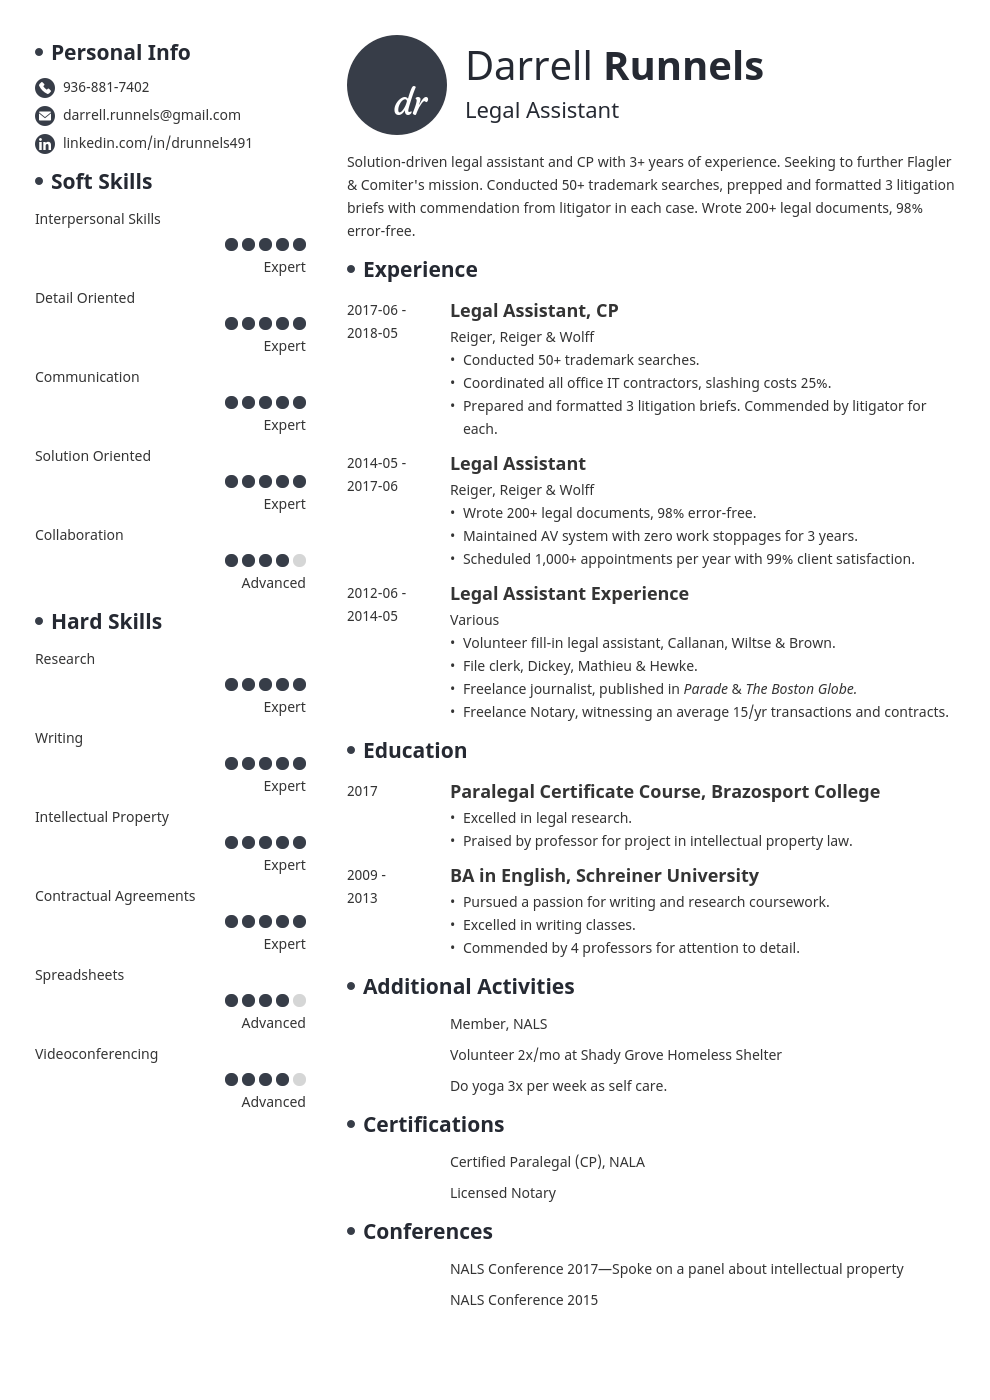 Legal Assistant Resume Example Template Initials Resume Examples Job Resume Examples Resume Templates